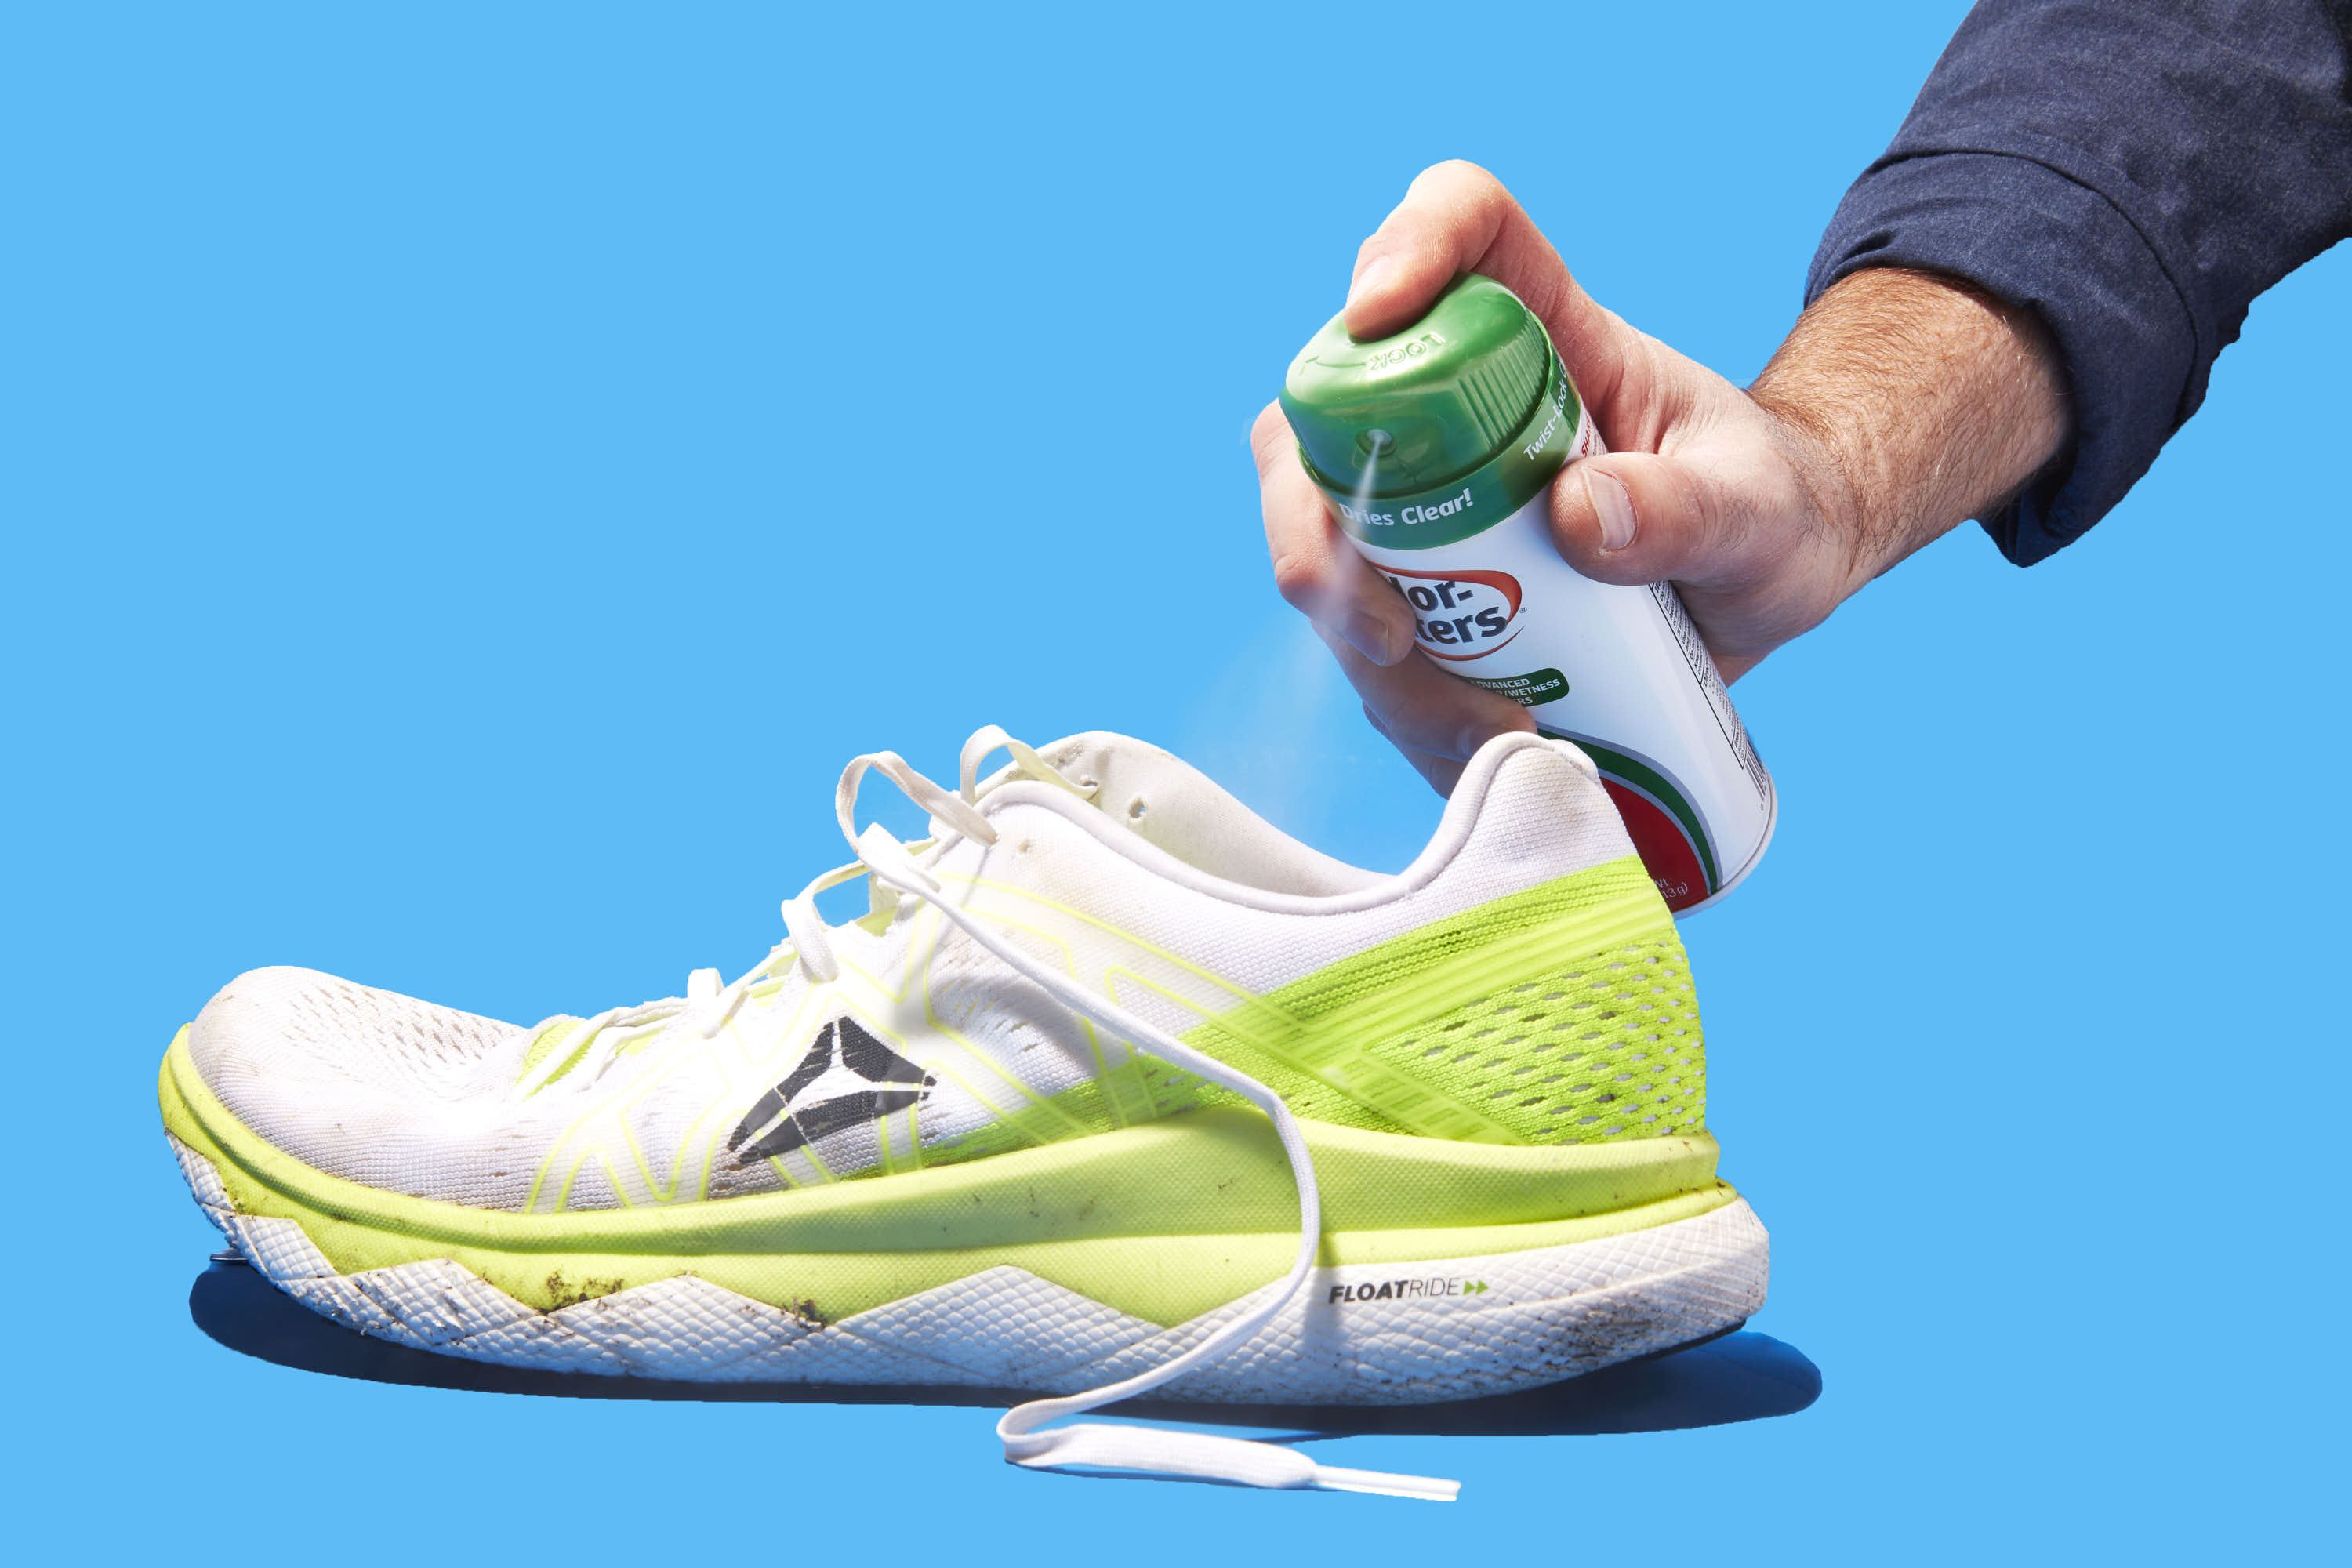 How To Get Rid Of Smelly Shoes